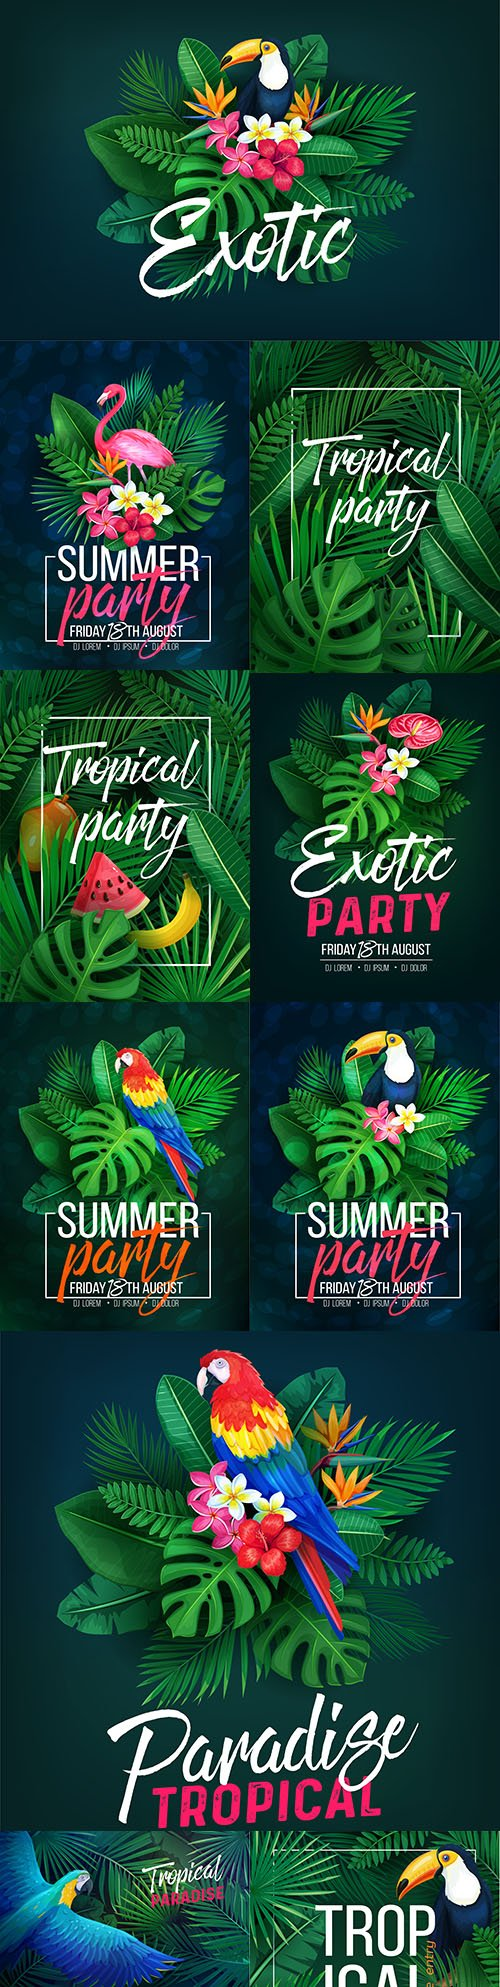 Summer tropical party bright design illustration